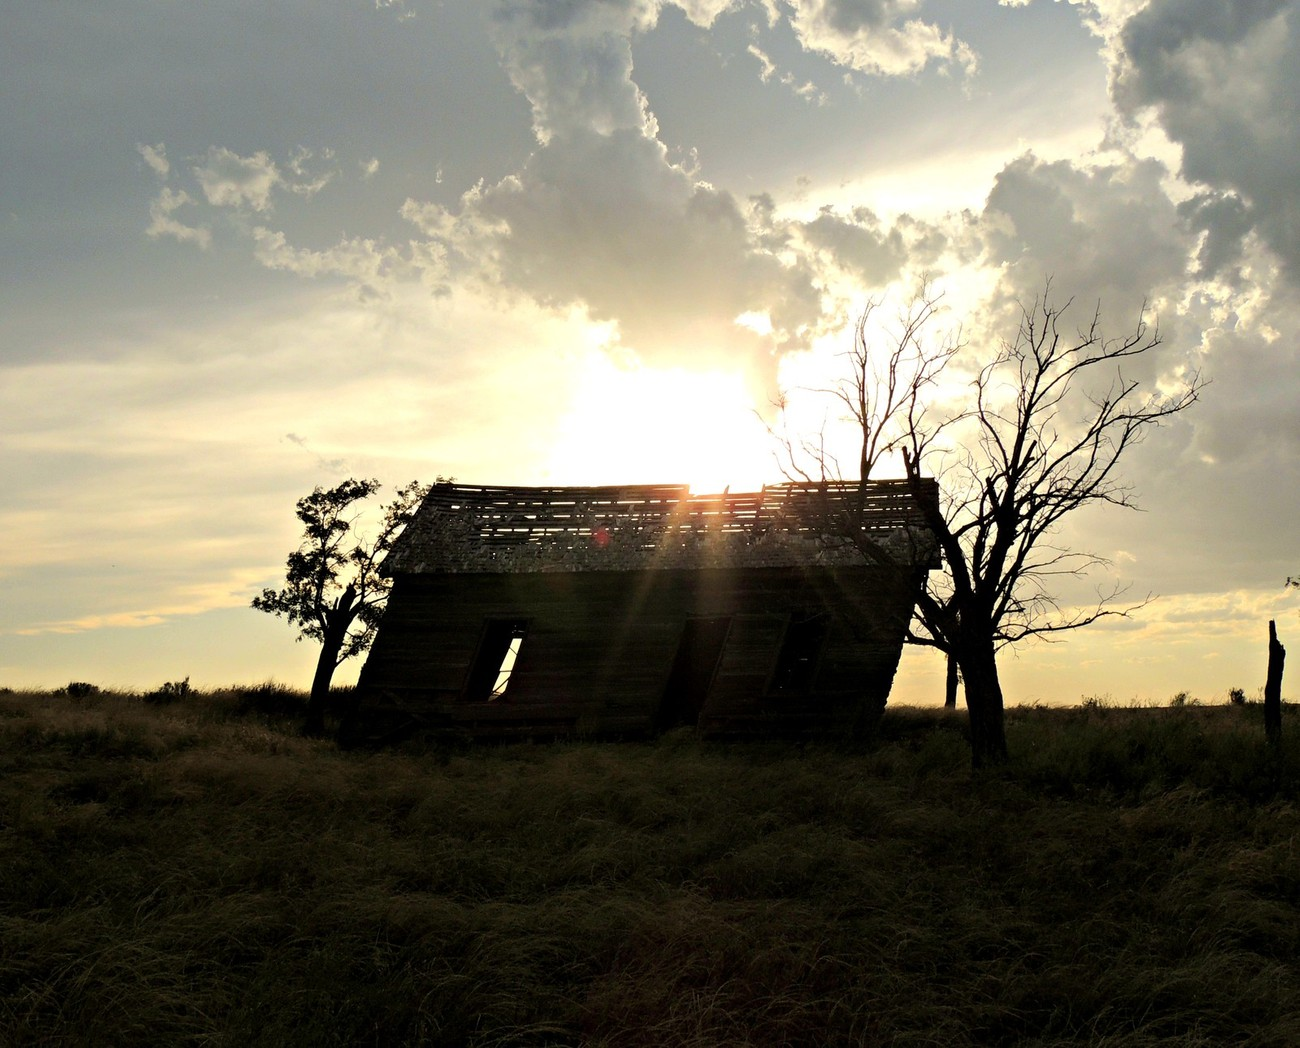 An old barn stands lonely in a pasture.